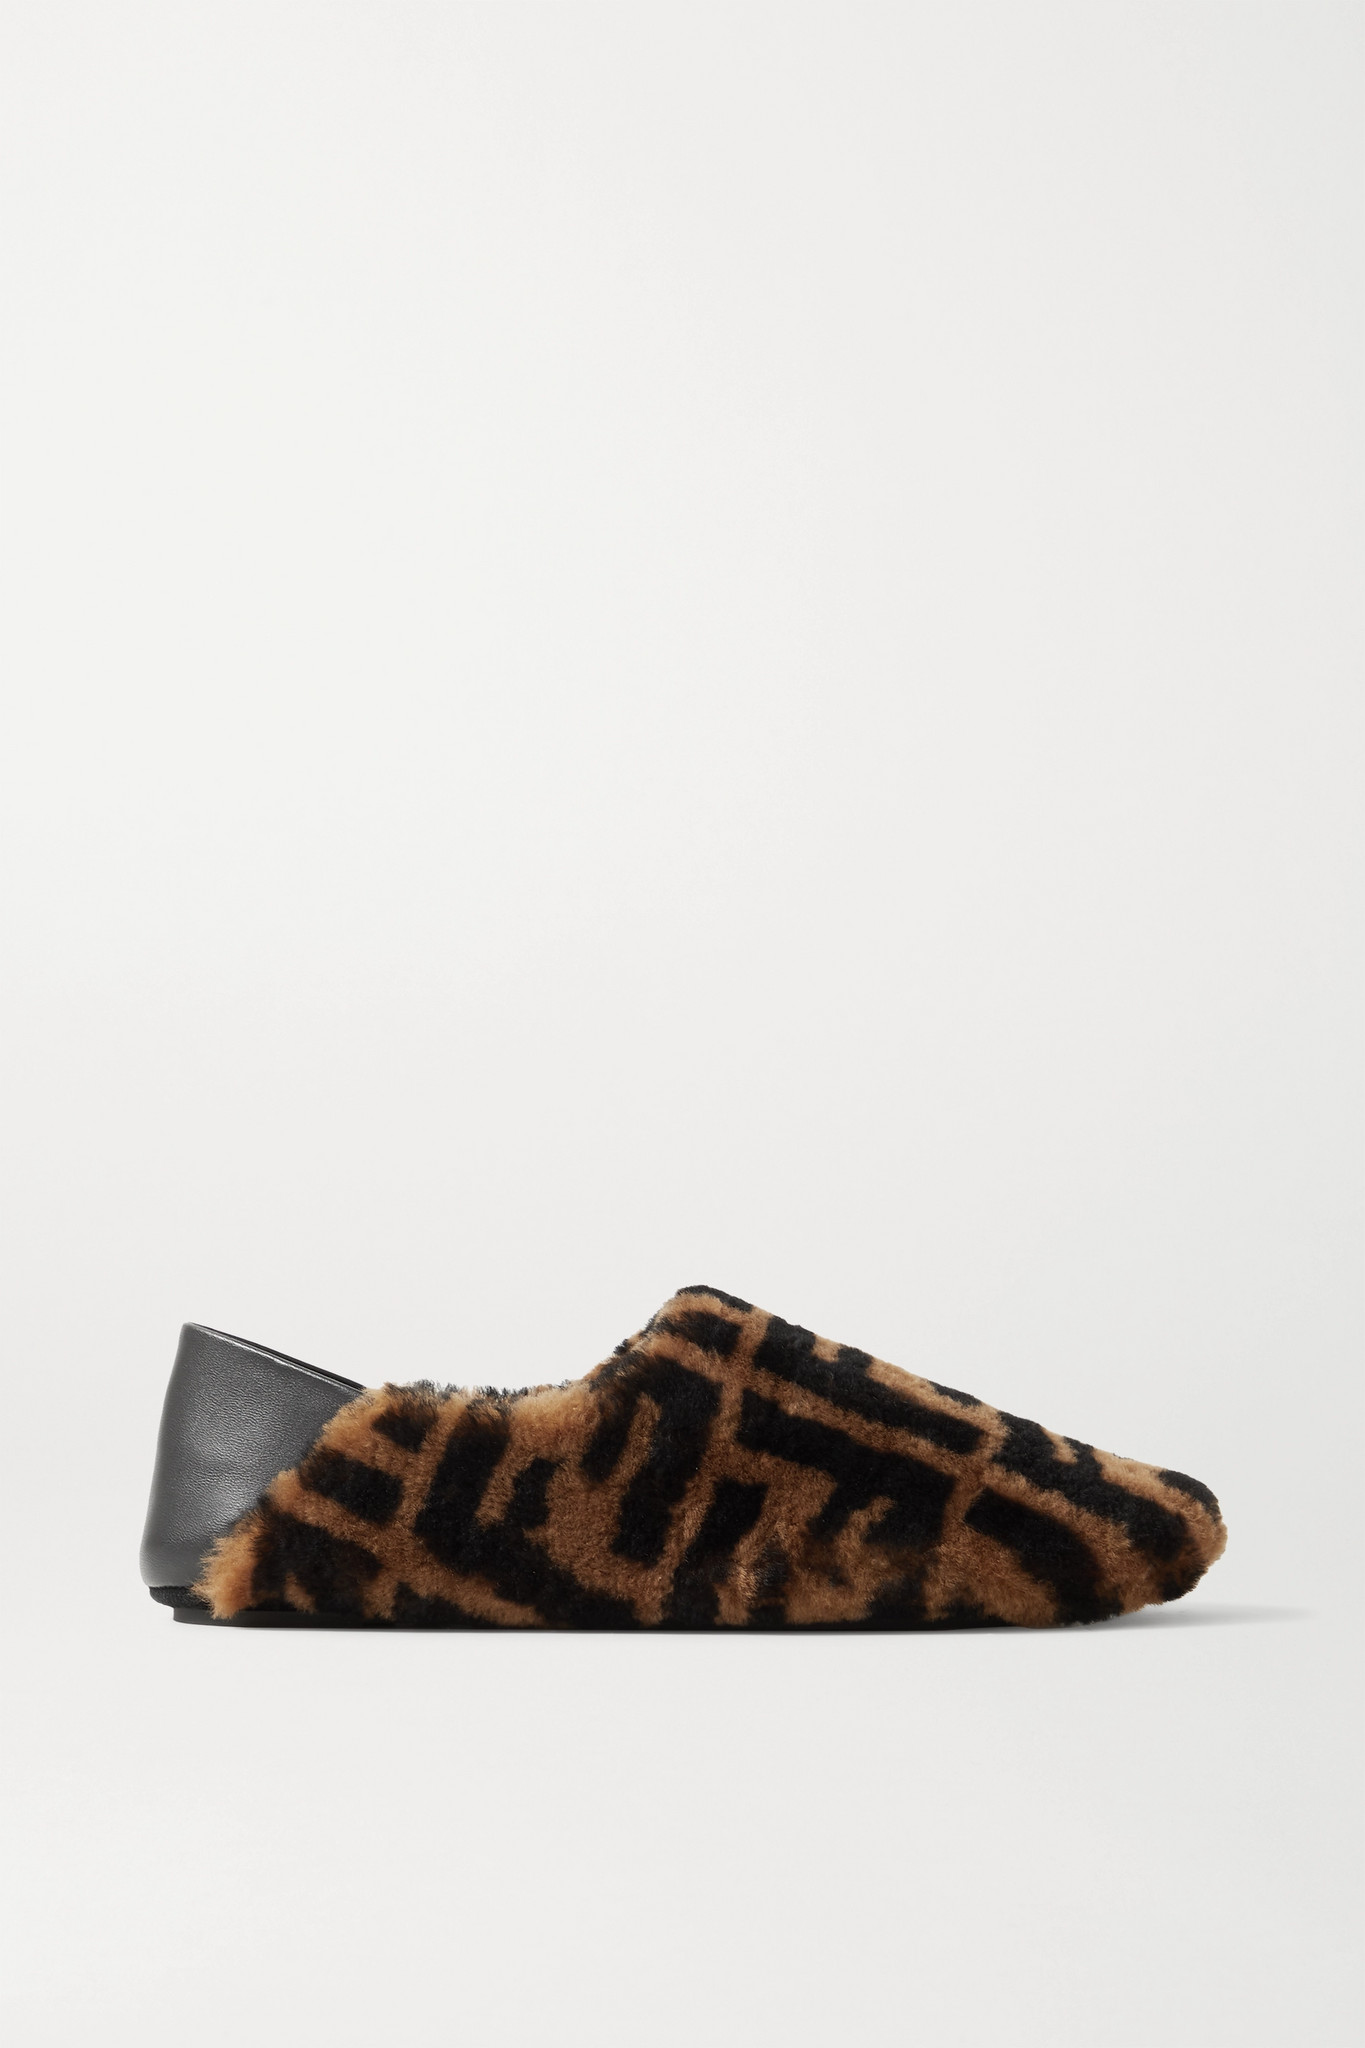 FENDI - Leather-trimmed Logo-print Shearling Collapsible-heel Slippers - Brown - IT35